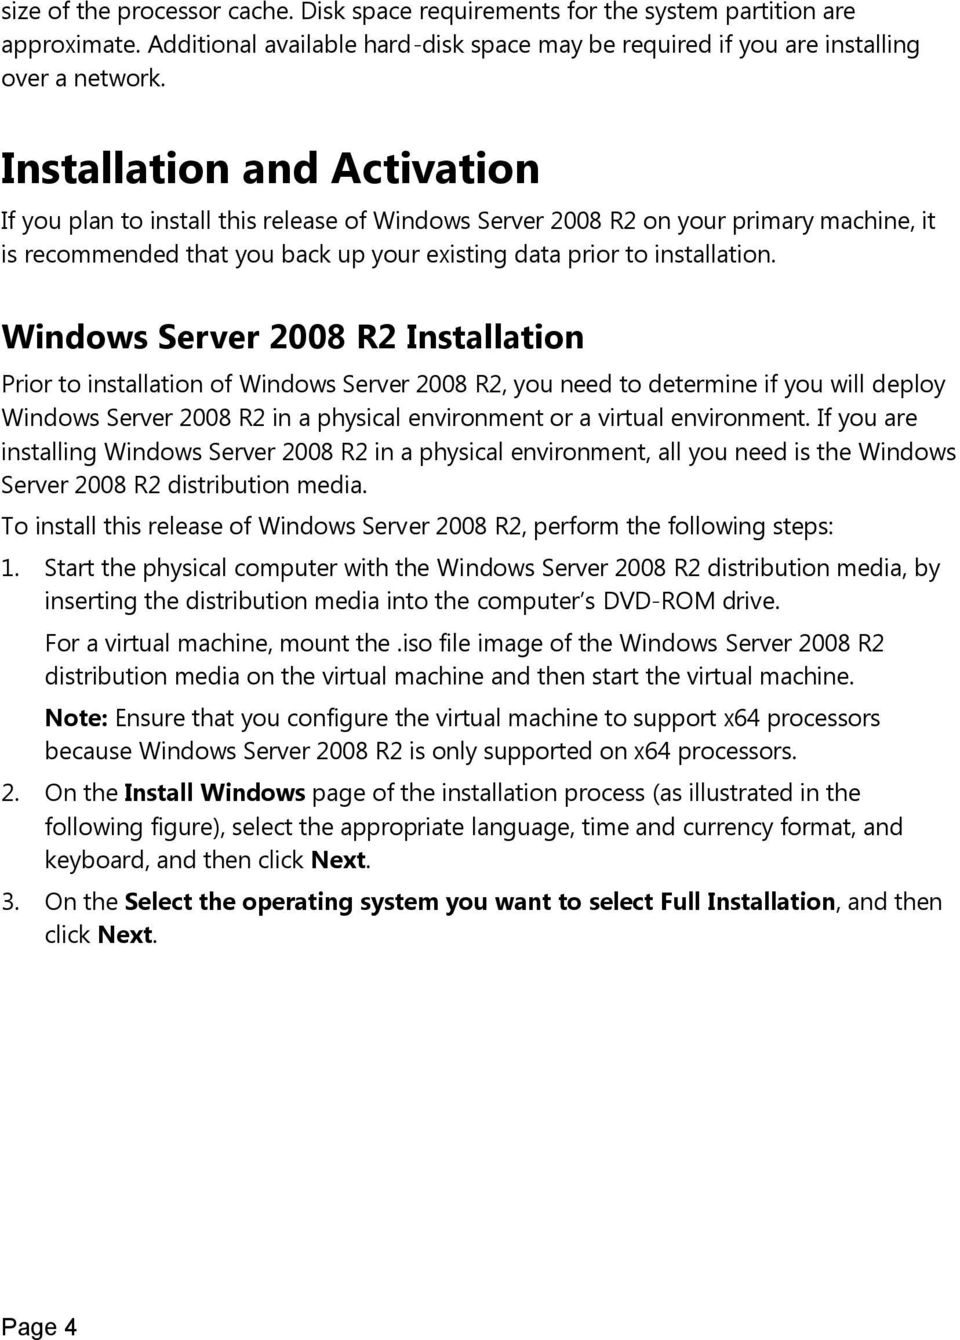 Windows Server 2008 R2 Installation Prior to installation of Windows Server 2008 R2, you need to determine if you will deploy Windows Server 2008 R2 in a physical environment or a virtual environment.